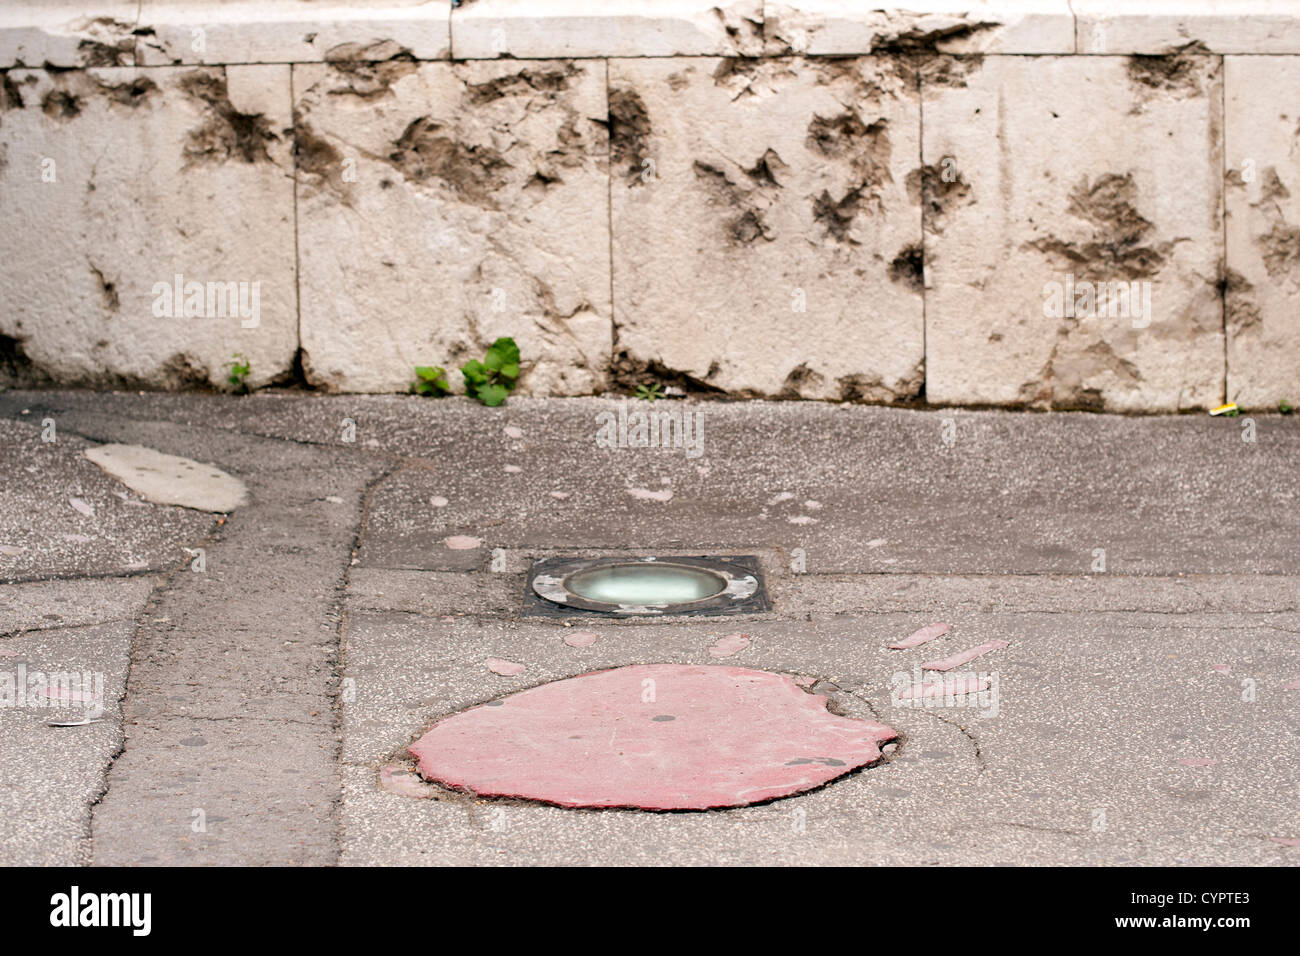 A 'Sarajevo Rose', a concrete scar caused by a mortar shell's explosion in the siege of Sarajevo during - Stock Image